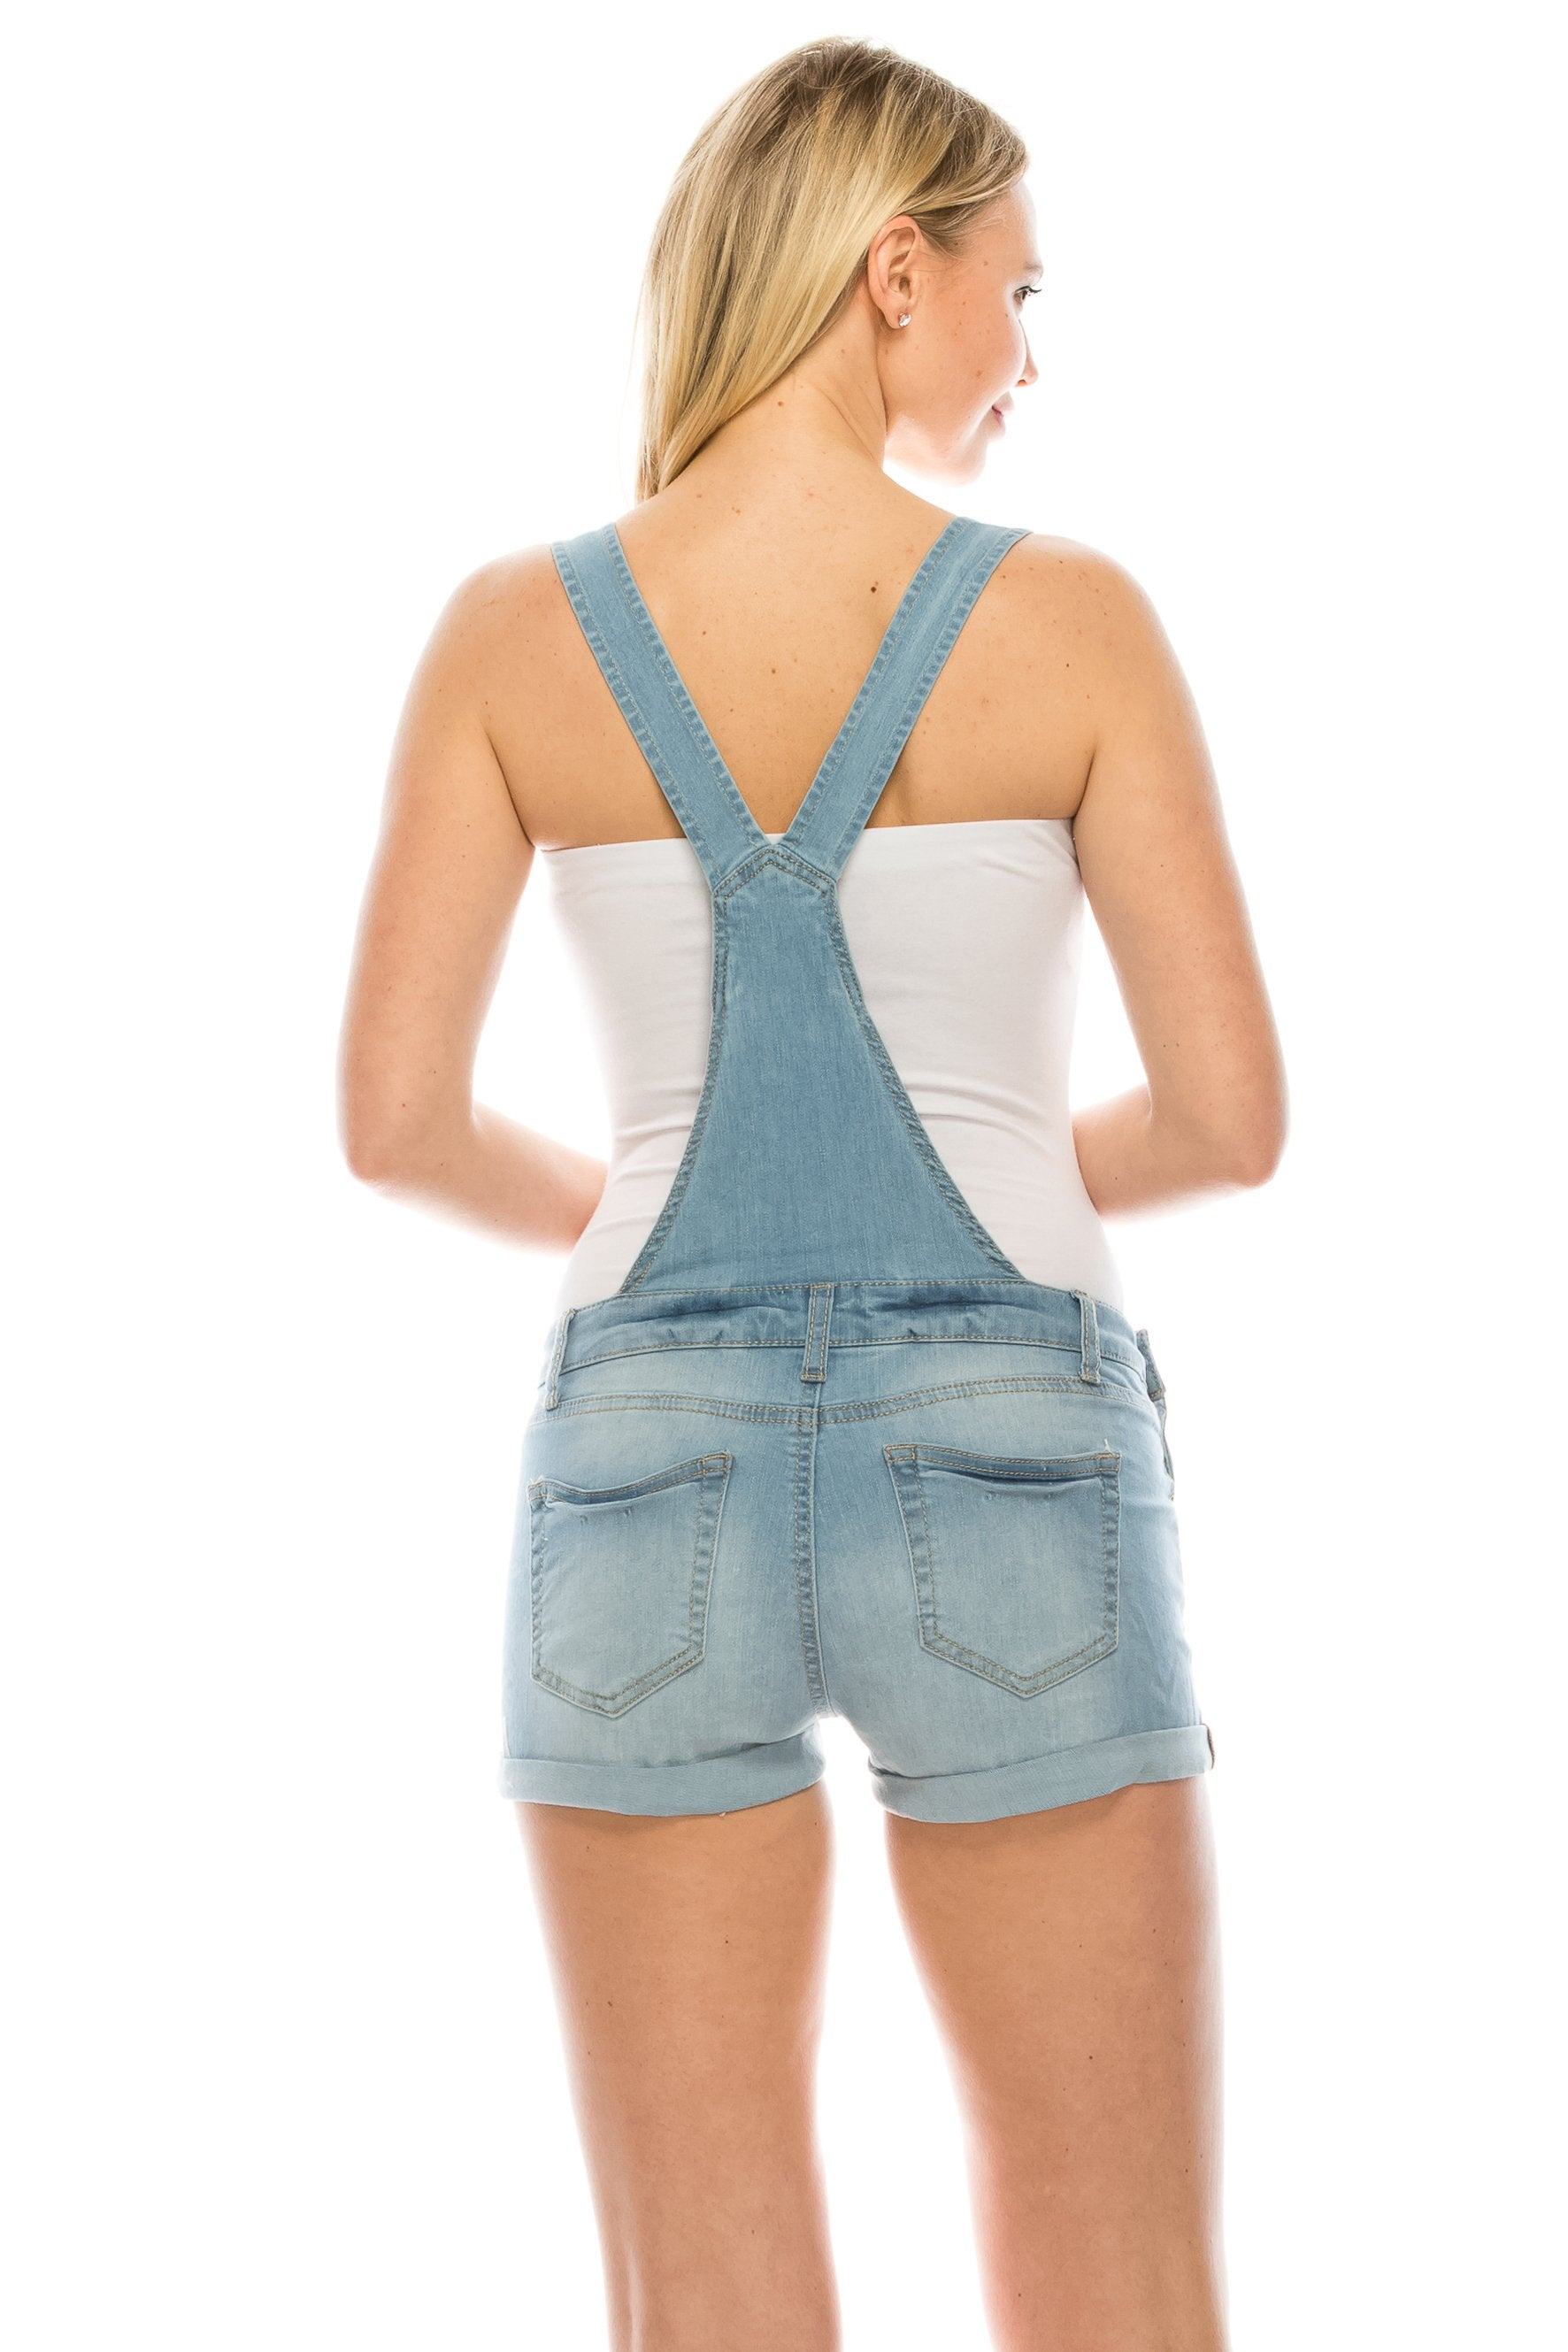 Women's Adjustable Straps Distressed Cuffed short Overall Light Blue Dungarees Shorts Roll Cuff Shortalls - Small